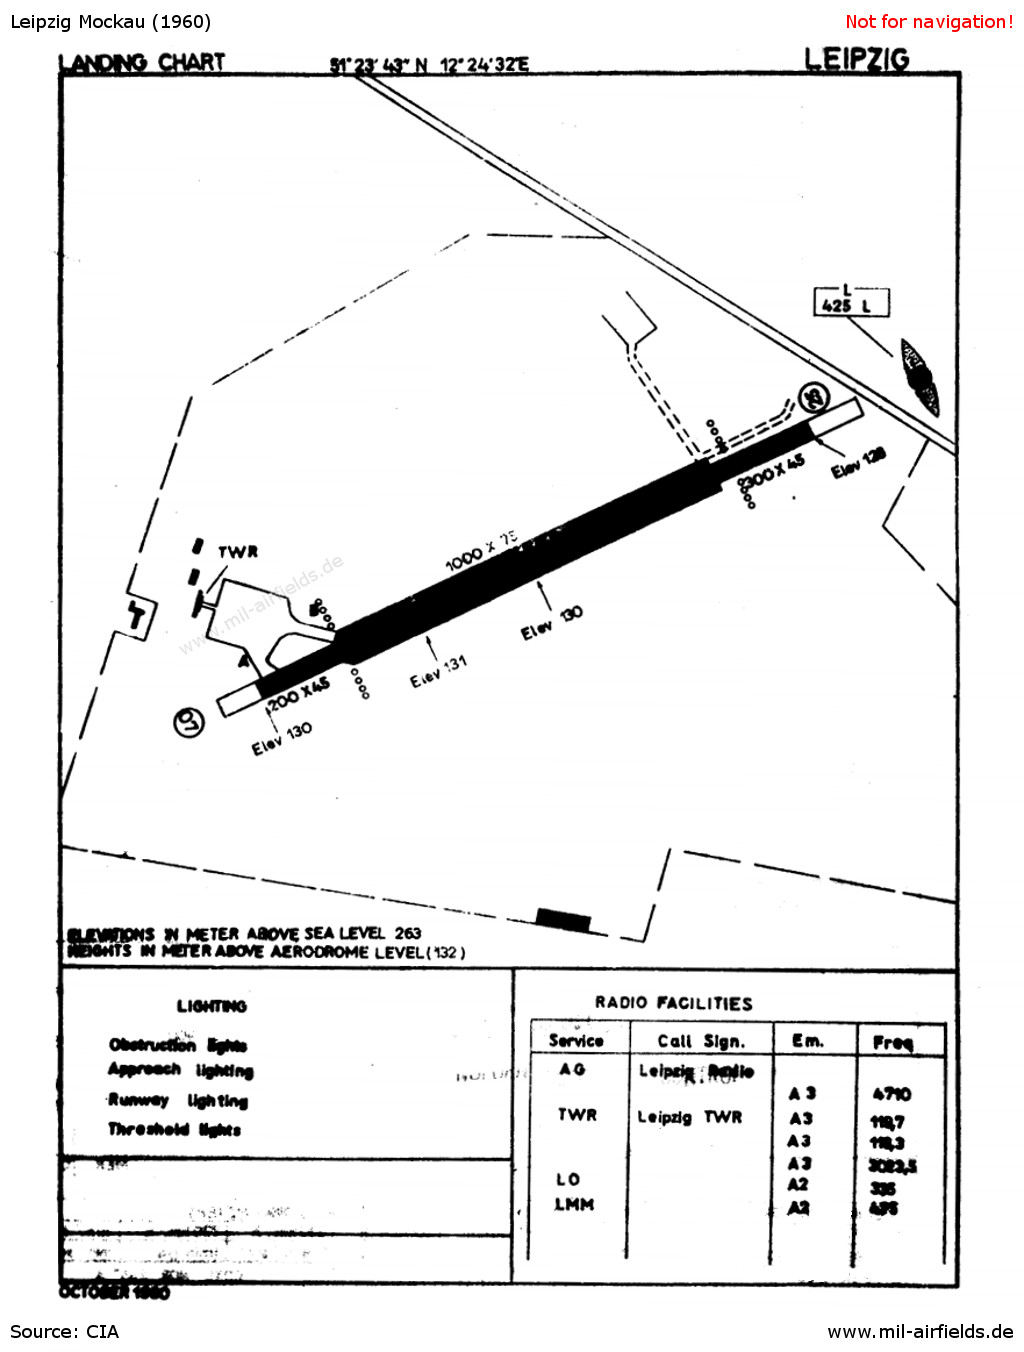 Chart of Leipzig Mockau Airport from 1960